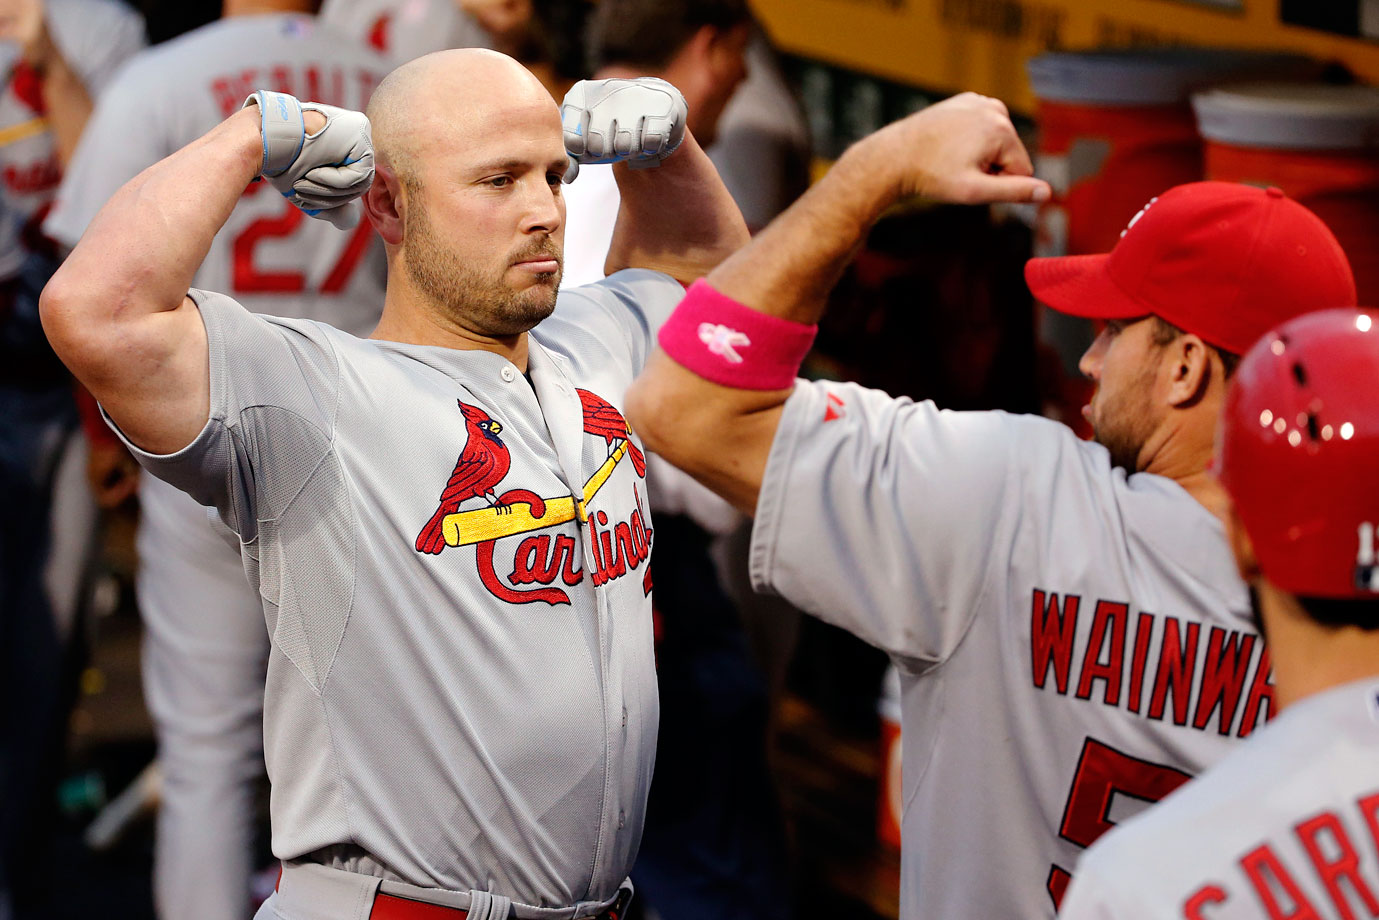 Highest salaries: Adam Wainwright ($19,500,000), Matt Holliday ($17,000,000), Yadier Molina ($15,200,000), Jhonny Peralta ($15,000,000)